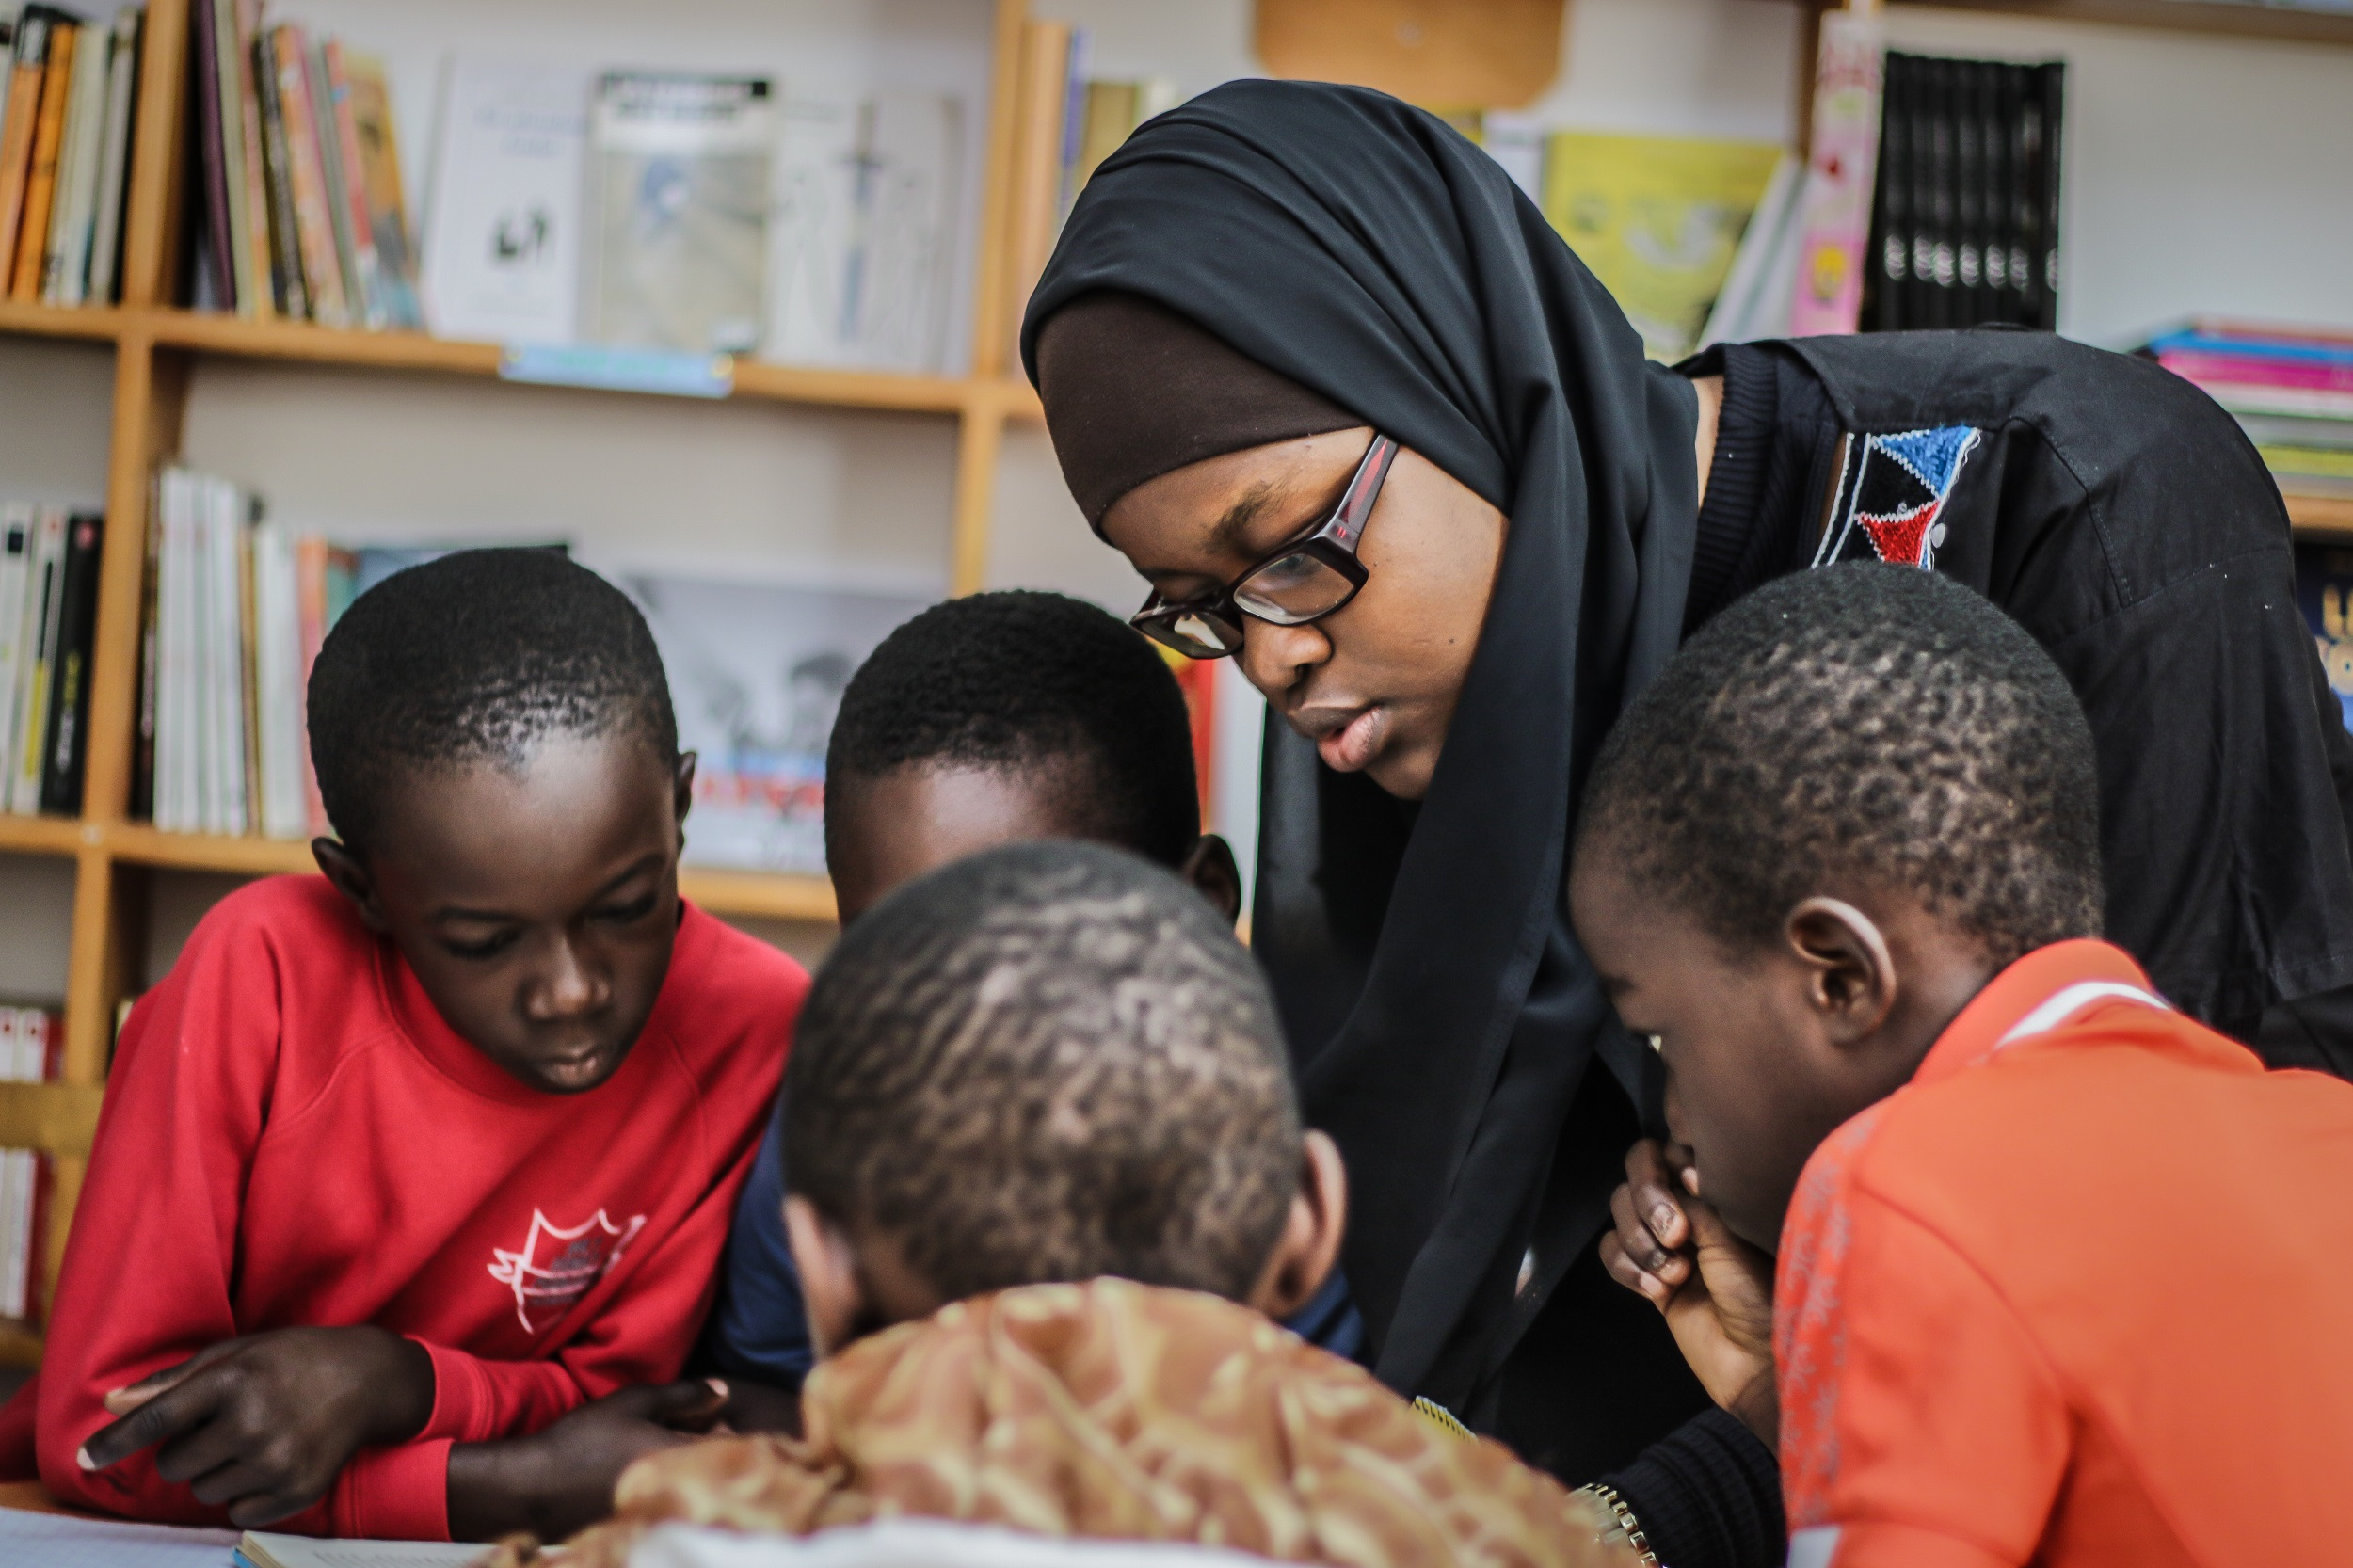 A lady in a head scarf surrounded by some children all peering as they are bent over a desk with shelves of books behind them